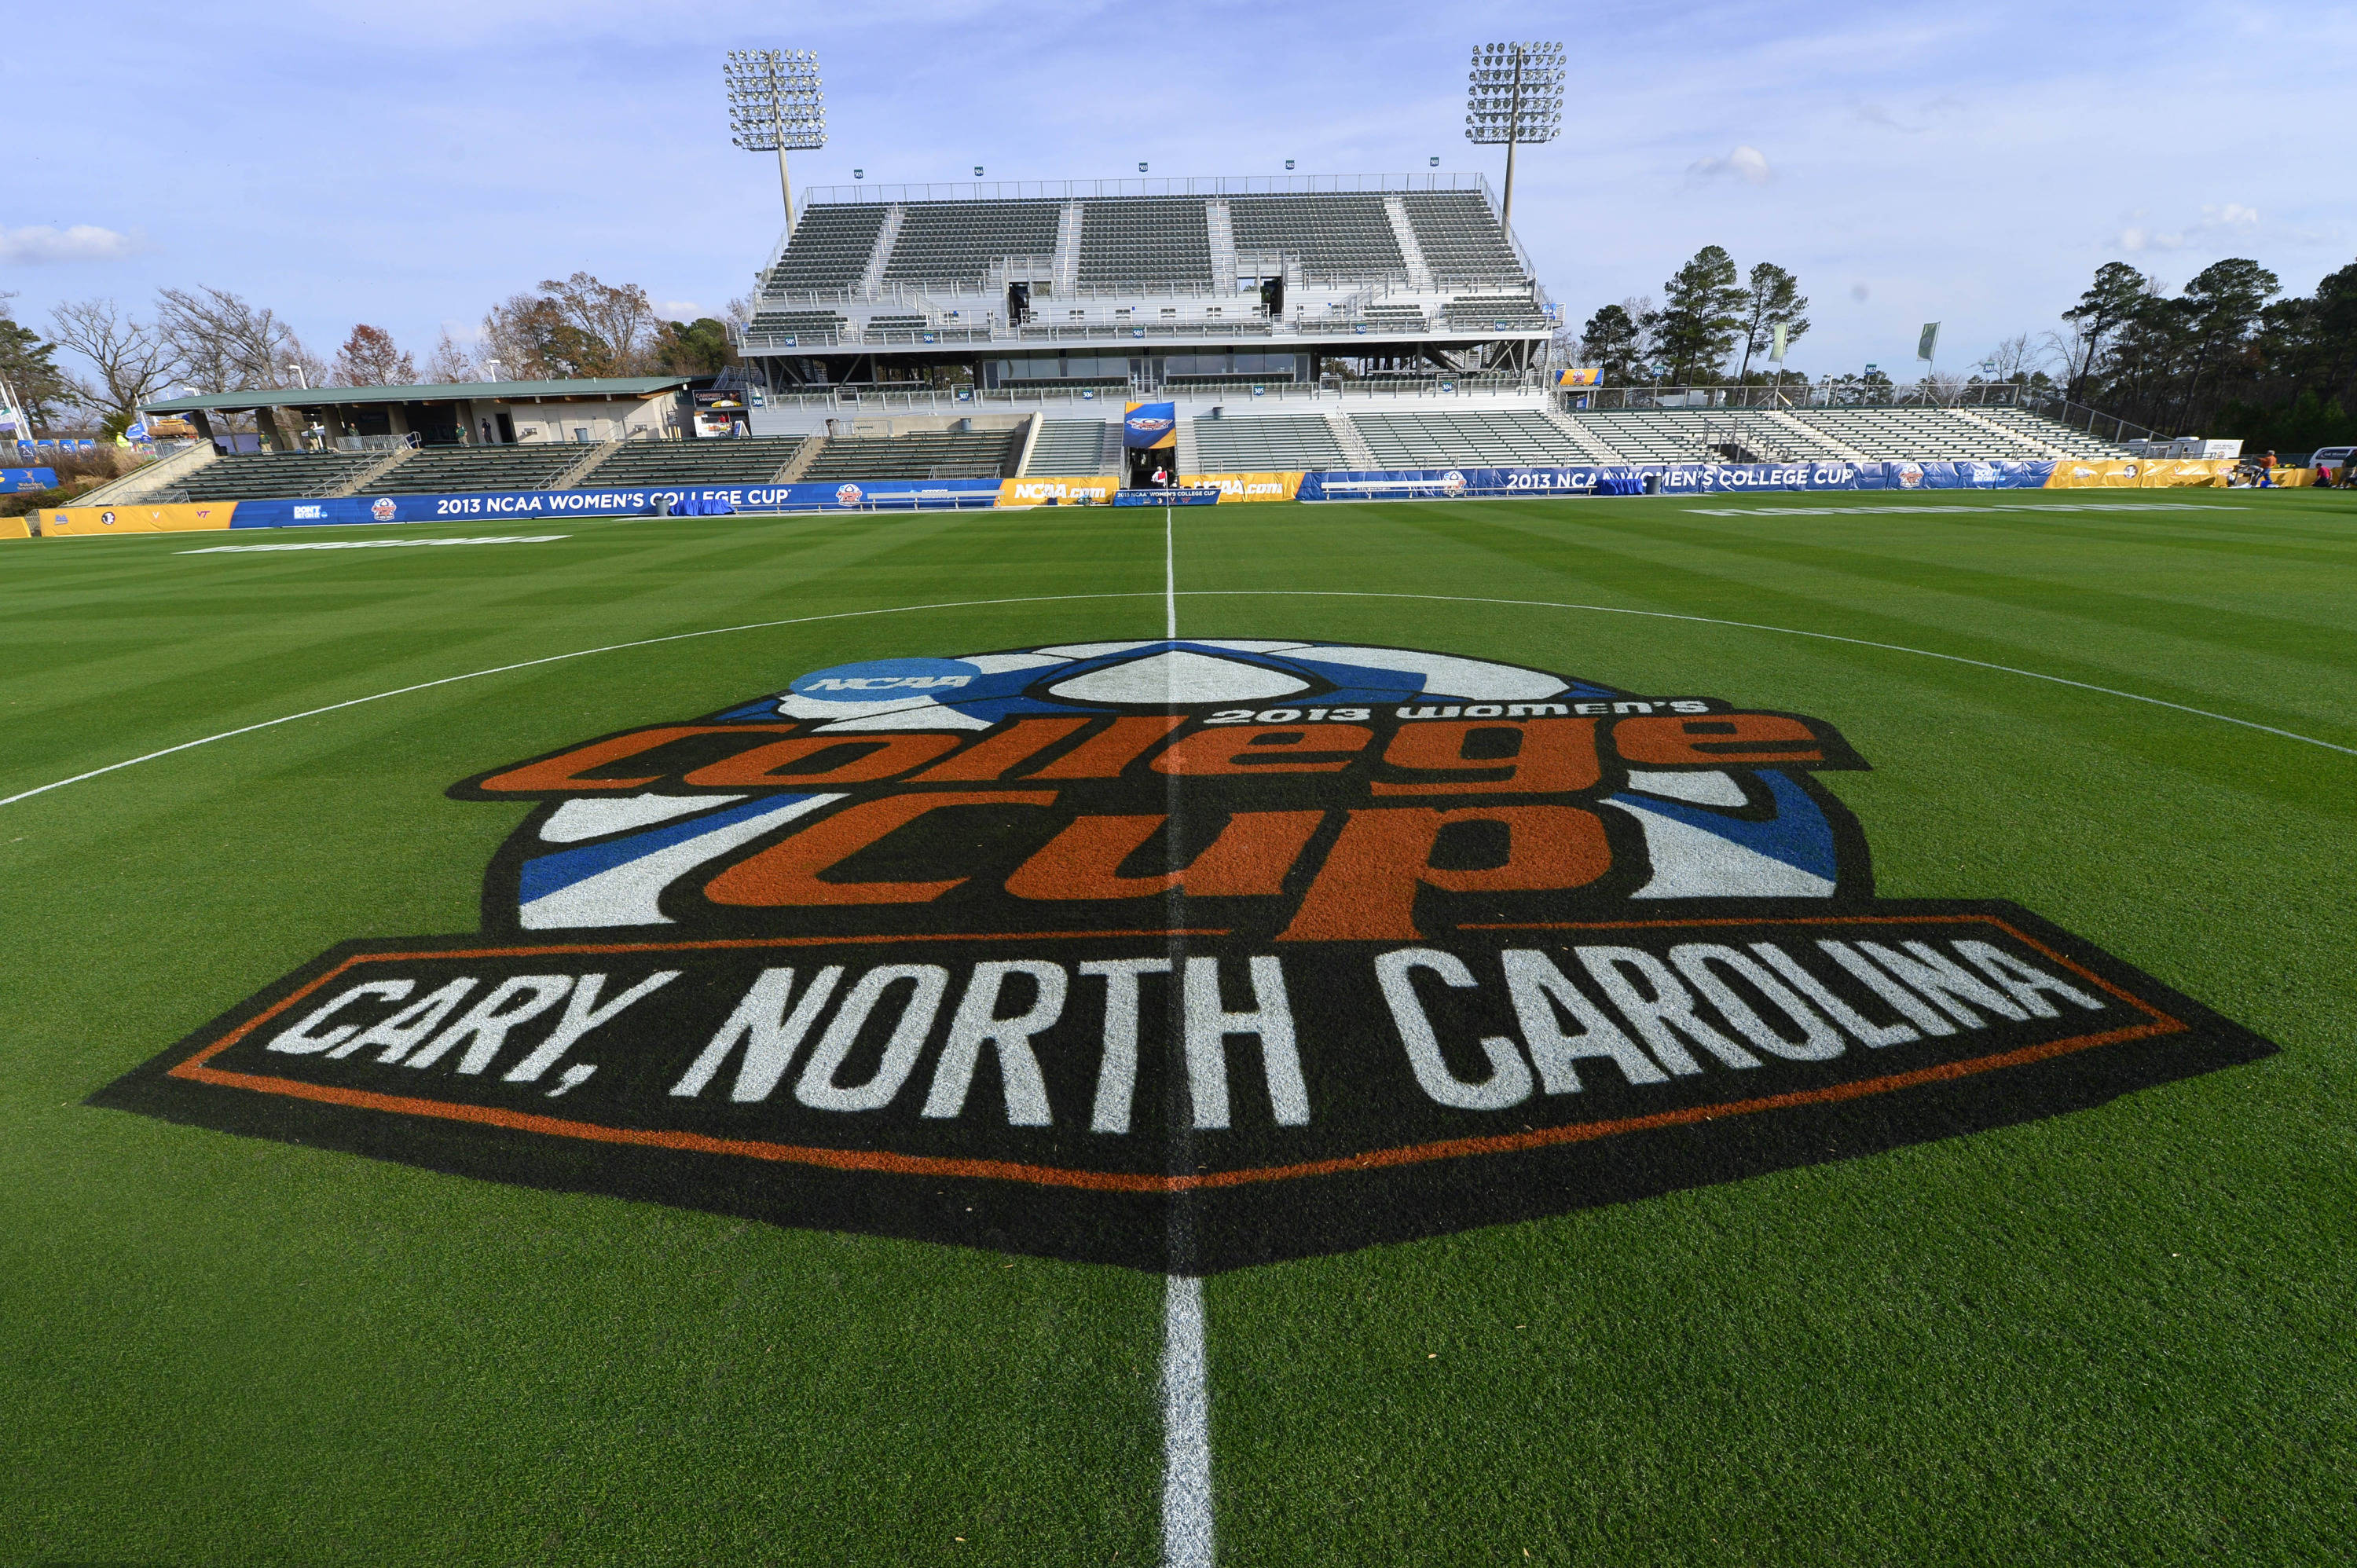 Dec 6, 2013; Cary, NC, USA; An overall view of the field at WakeMed Soccer Park. Mandatory Credit: Bob Donnan-USA TODAY Sports